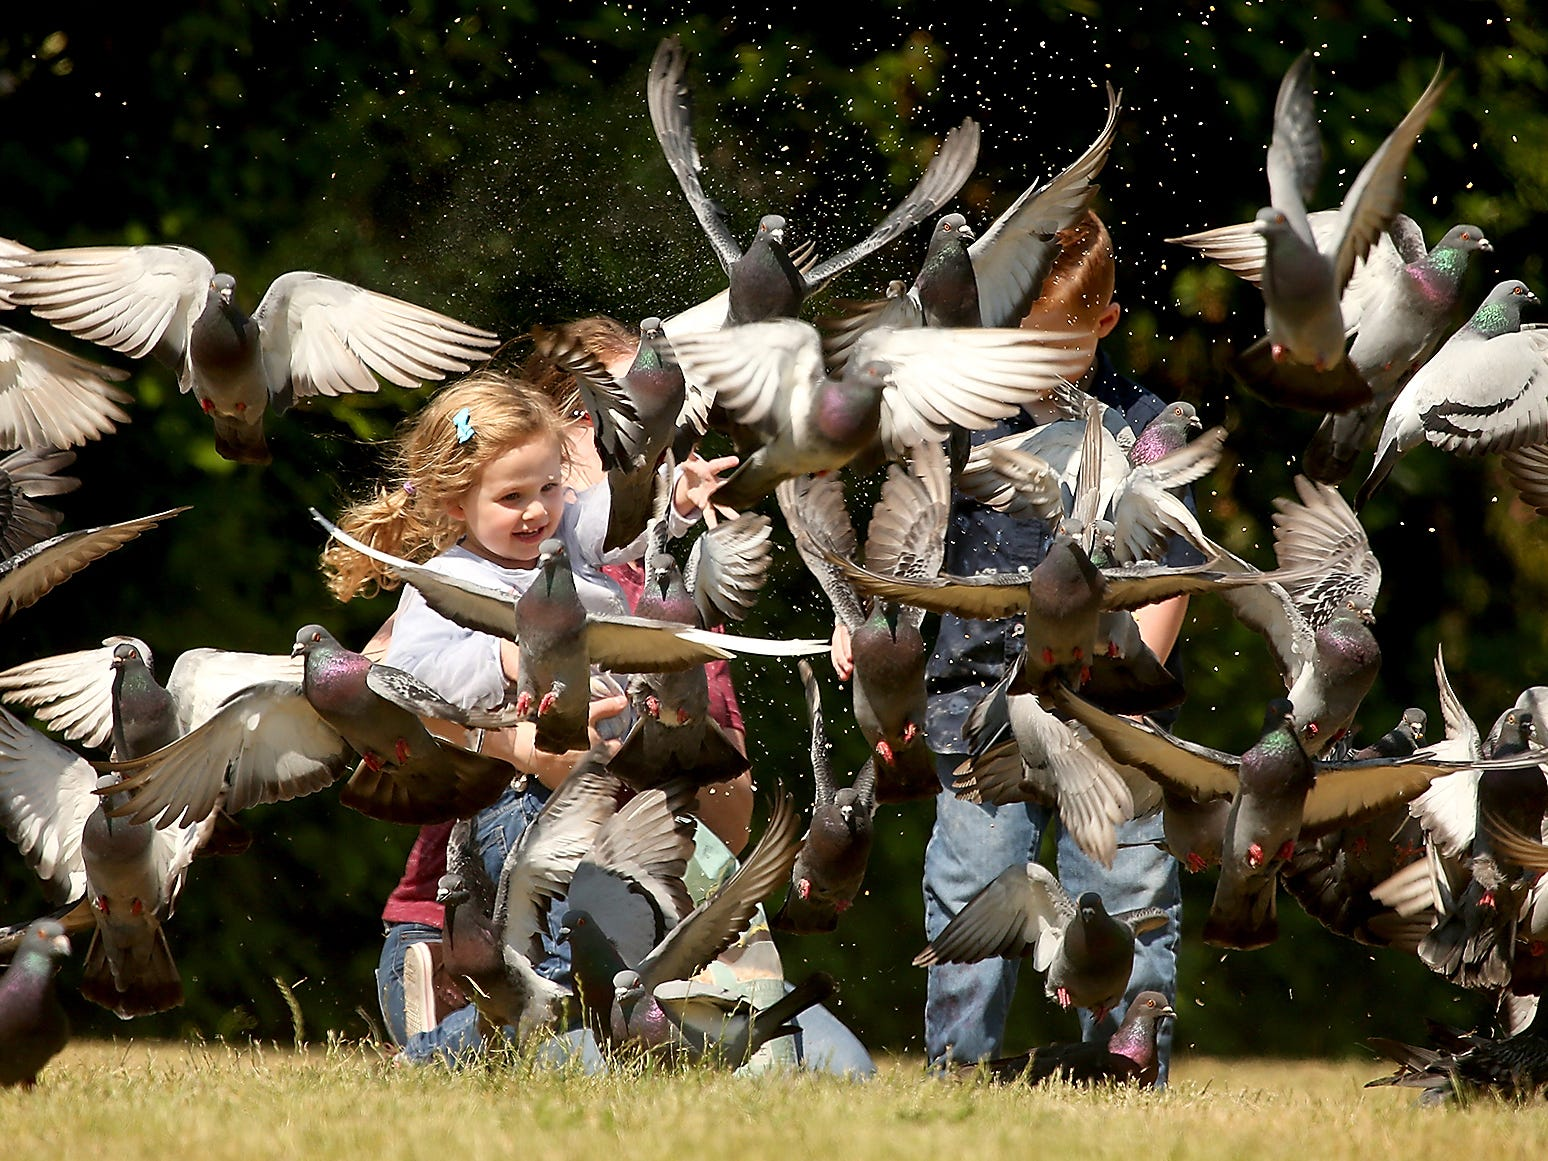 A flock of pigeons takes flight as Sue Lewis and kids Riley (left), 3, and Rowan, 5, toss them some bird seed at Old Mill Park in Silverdale, Washington on Tuesday, June 5, 2018.